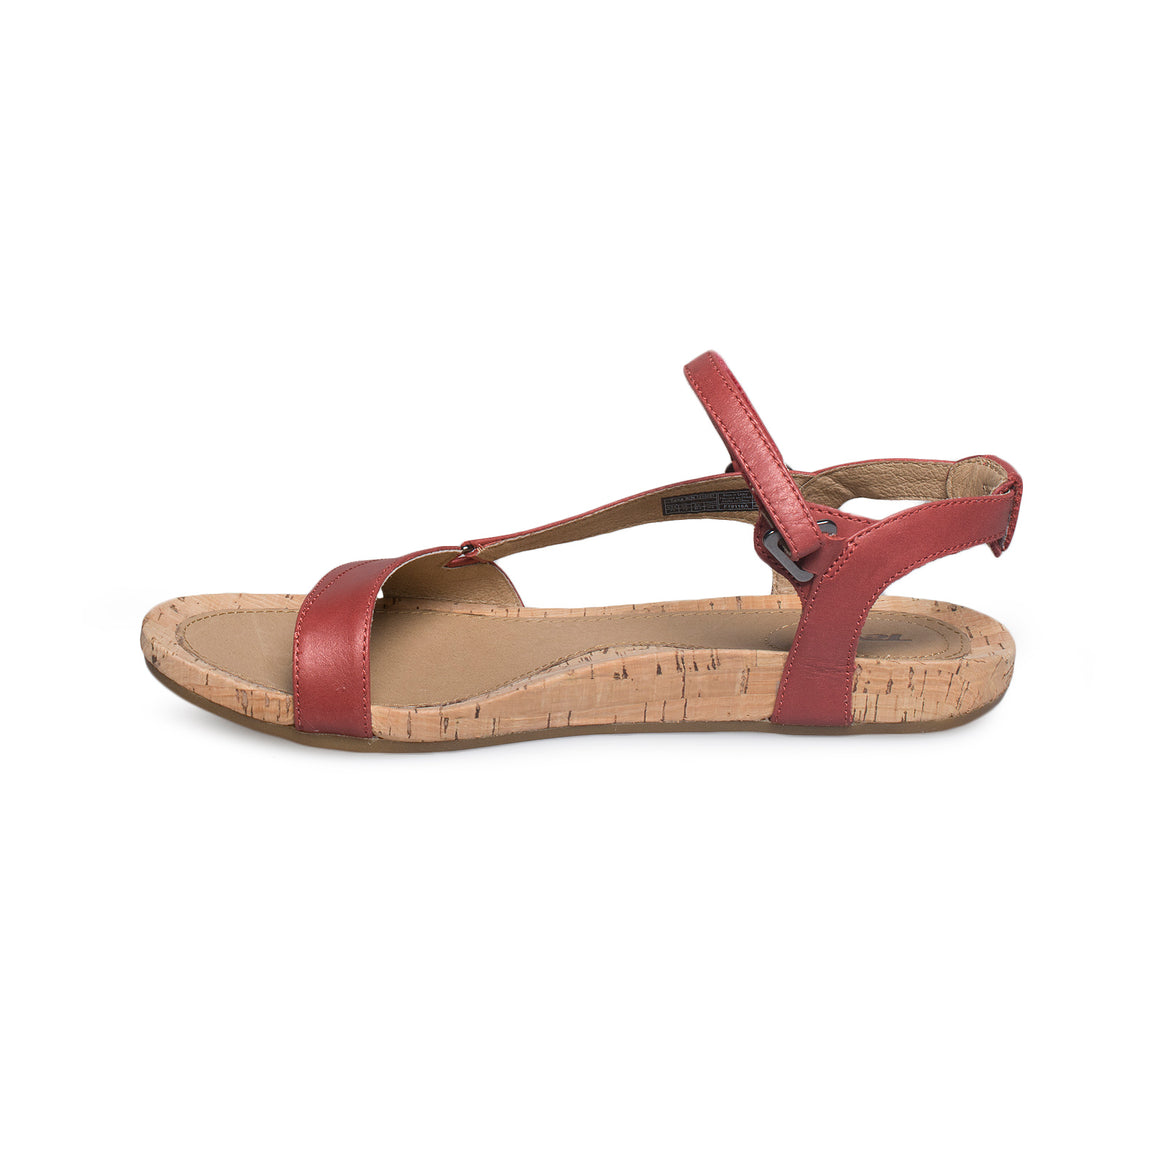 TEVA Capri Universal Pearlized Red Sandals - Women's